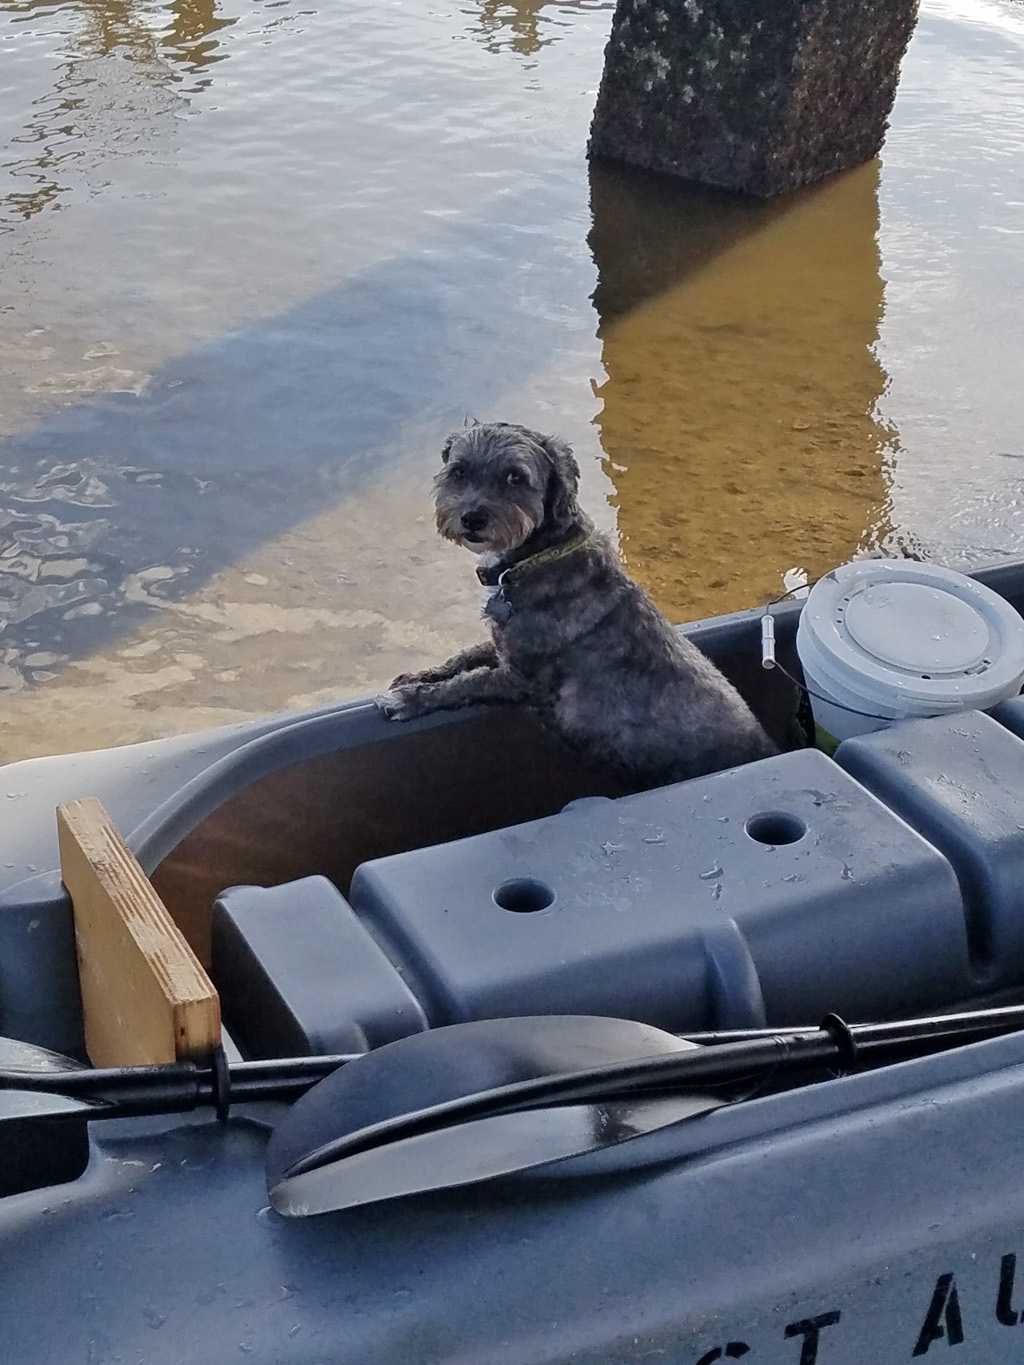 Cute dog standing in the cockpit of a Wavewalk S4 fishing kayak